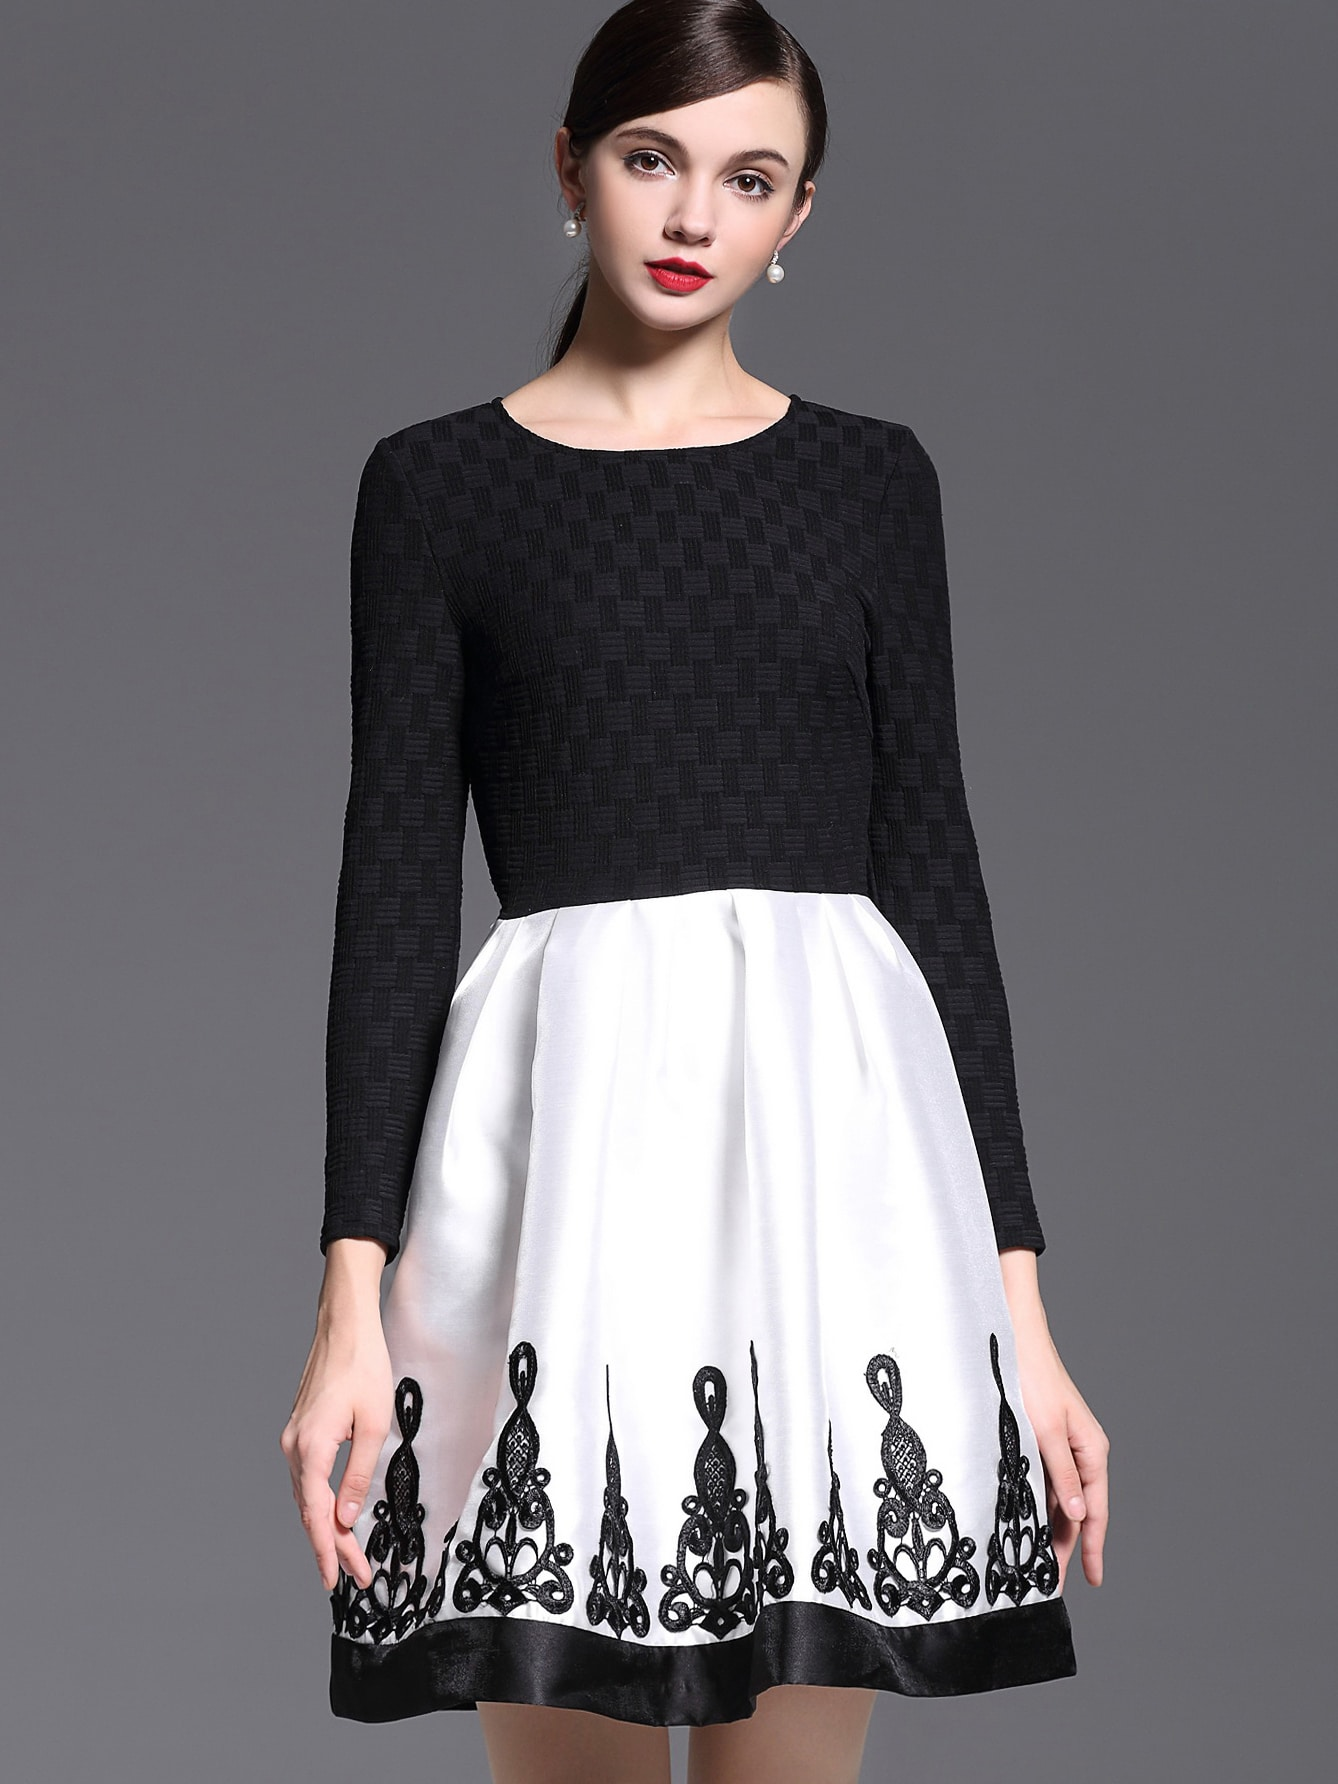 White Black Round Neck Long Sleeve Embroidered DressWhite Black Round Neck Long Sleeve Embroidered Dress<br><br>color: Multicolor<br>size: S